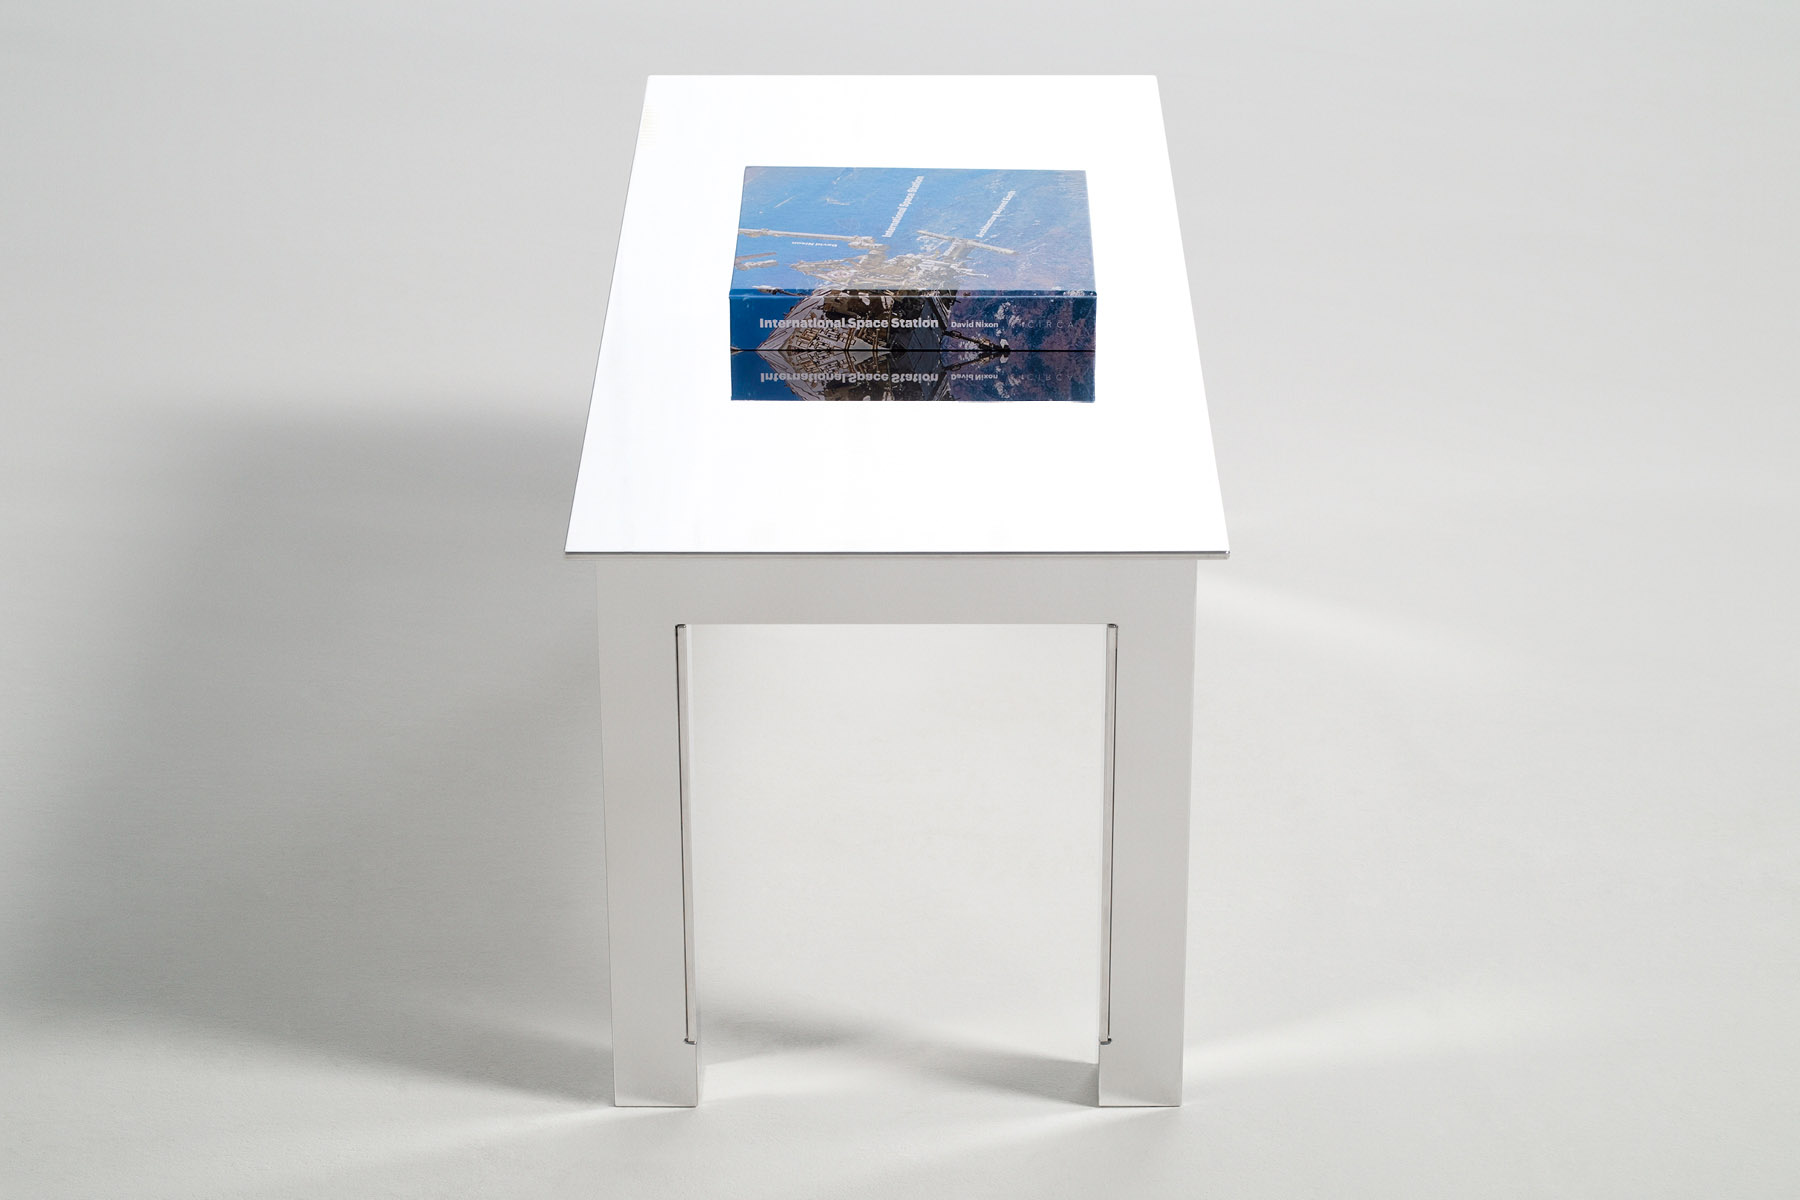 Aluminium coffee table seen from the side